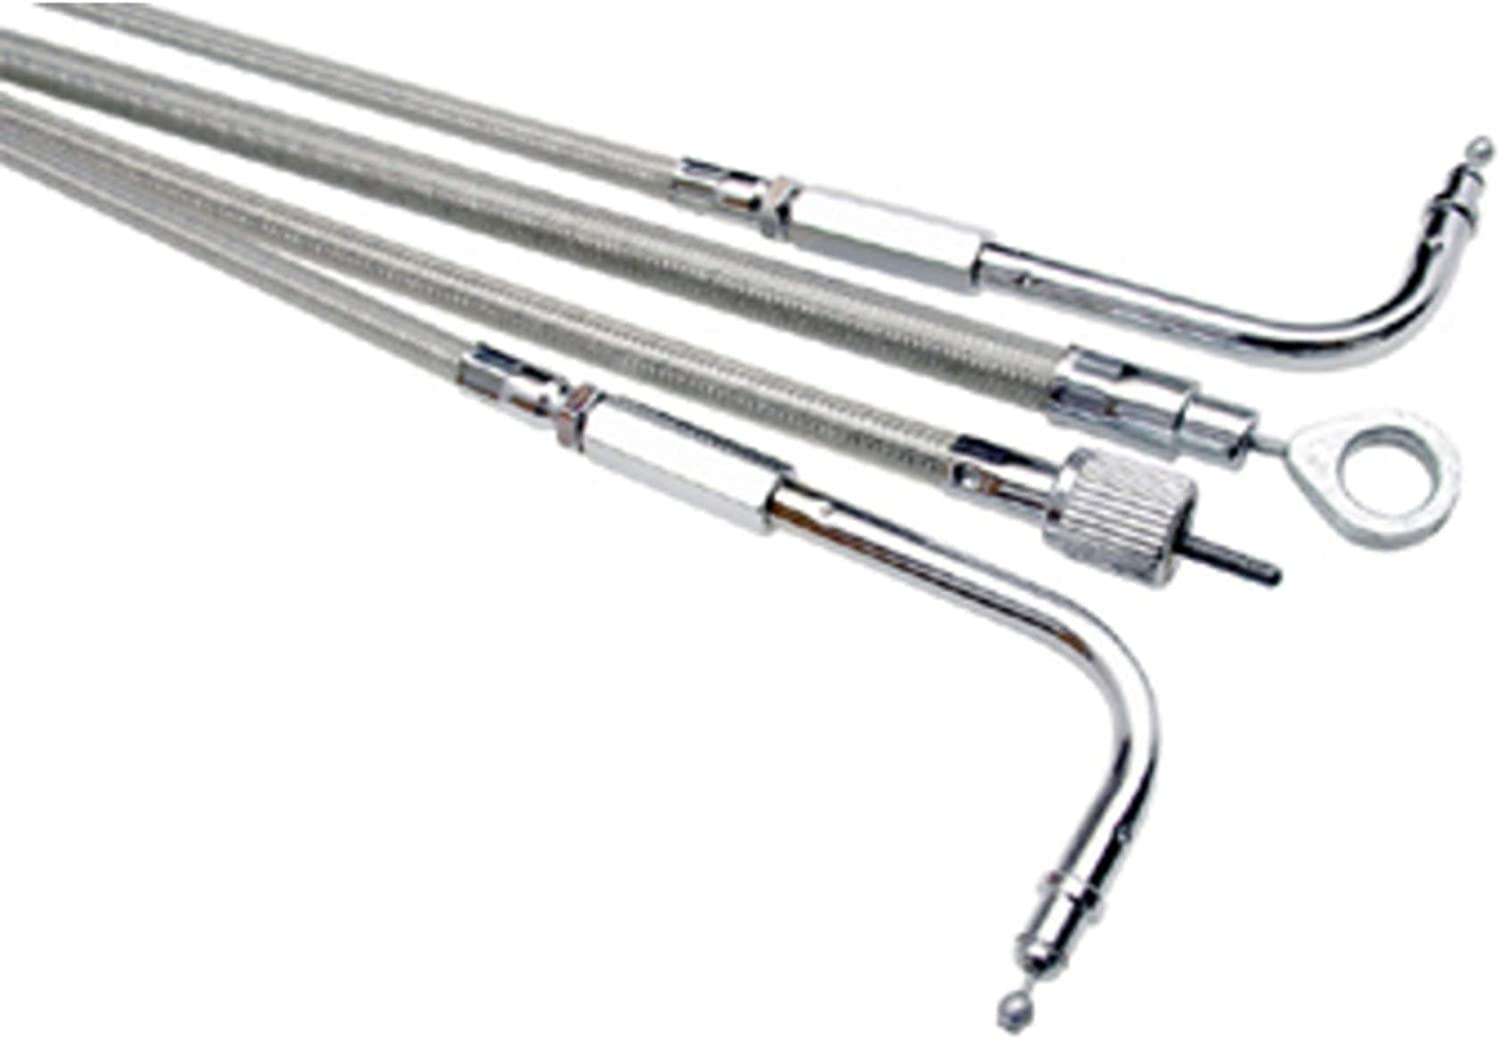 Armor Coat Max 84% OFF Stainless Steel Pull Fits Cable Throttle Harley Popularity 2009